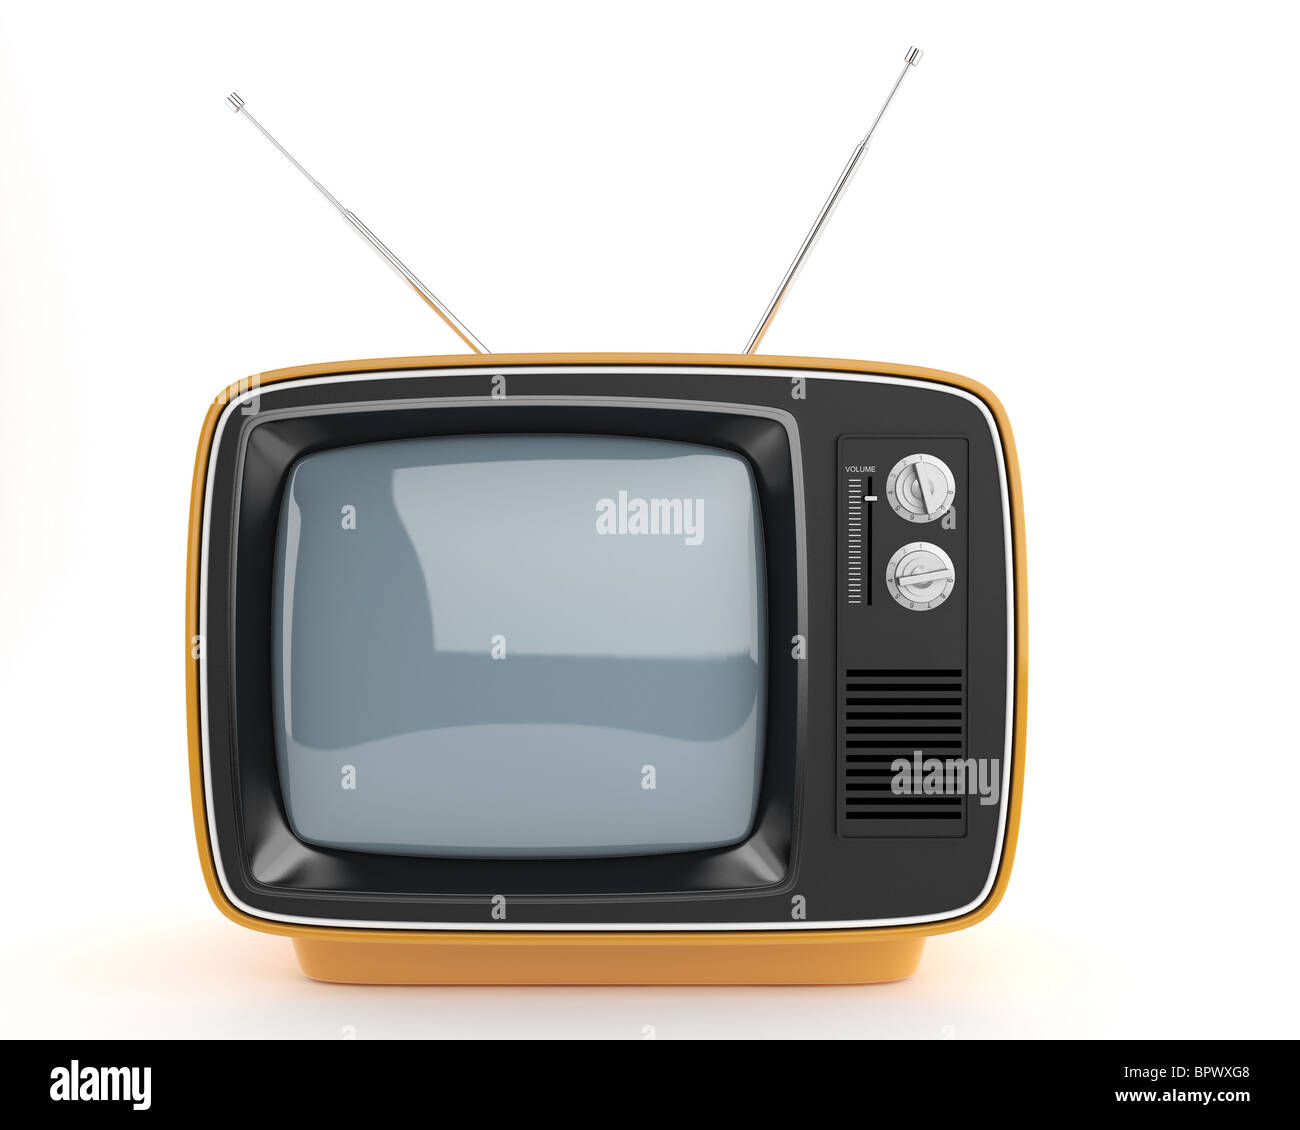 frontal view of an orange retro syle TV, This image contain a clipping path for exact isolation from the background - Stock Image